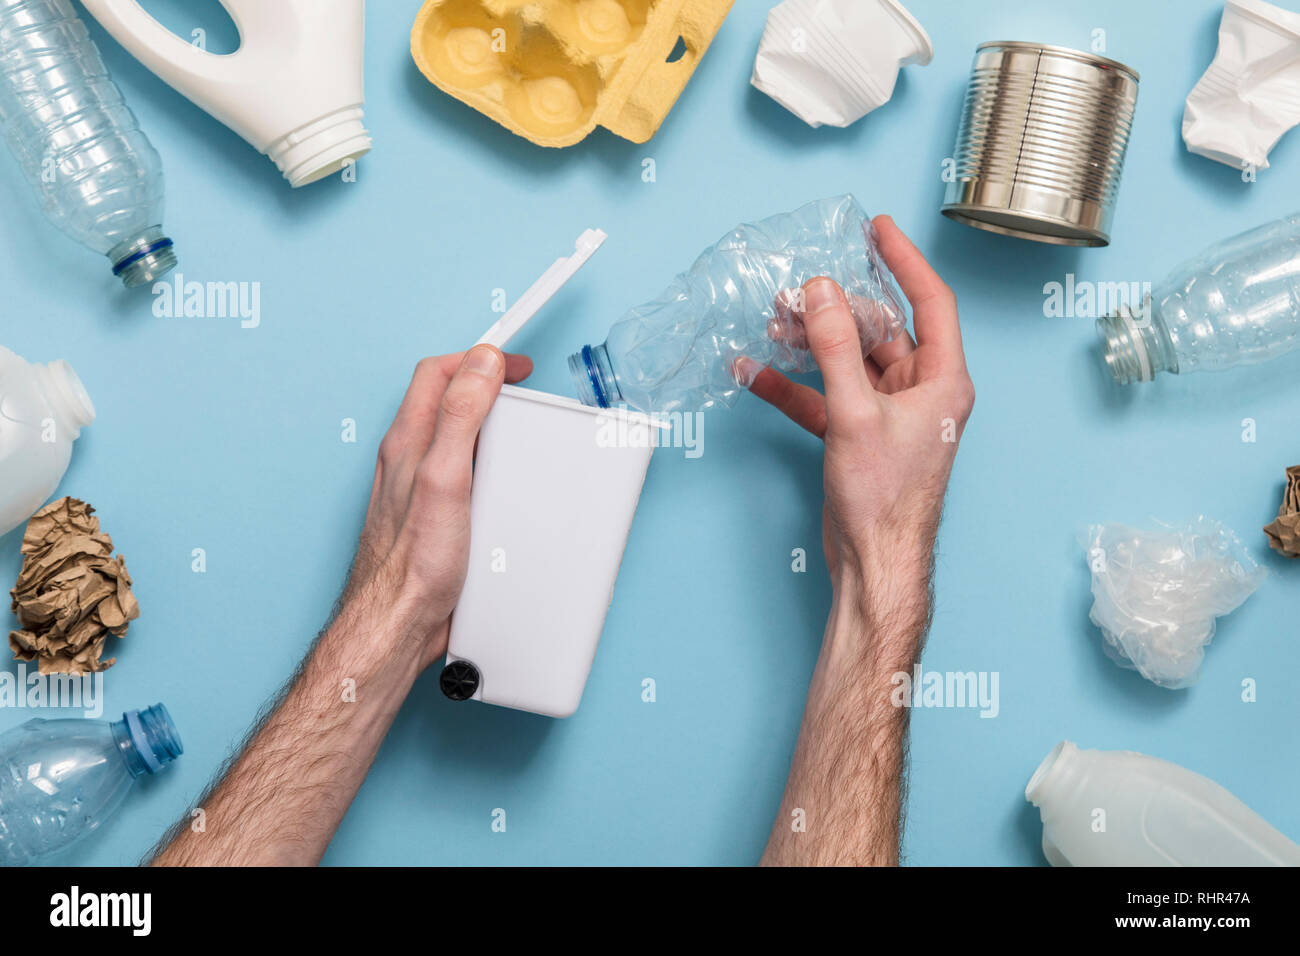 Hand holding a recycling garbage bin with lots of waste packaging - Stock Image